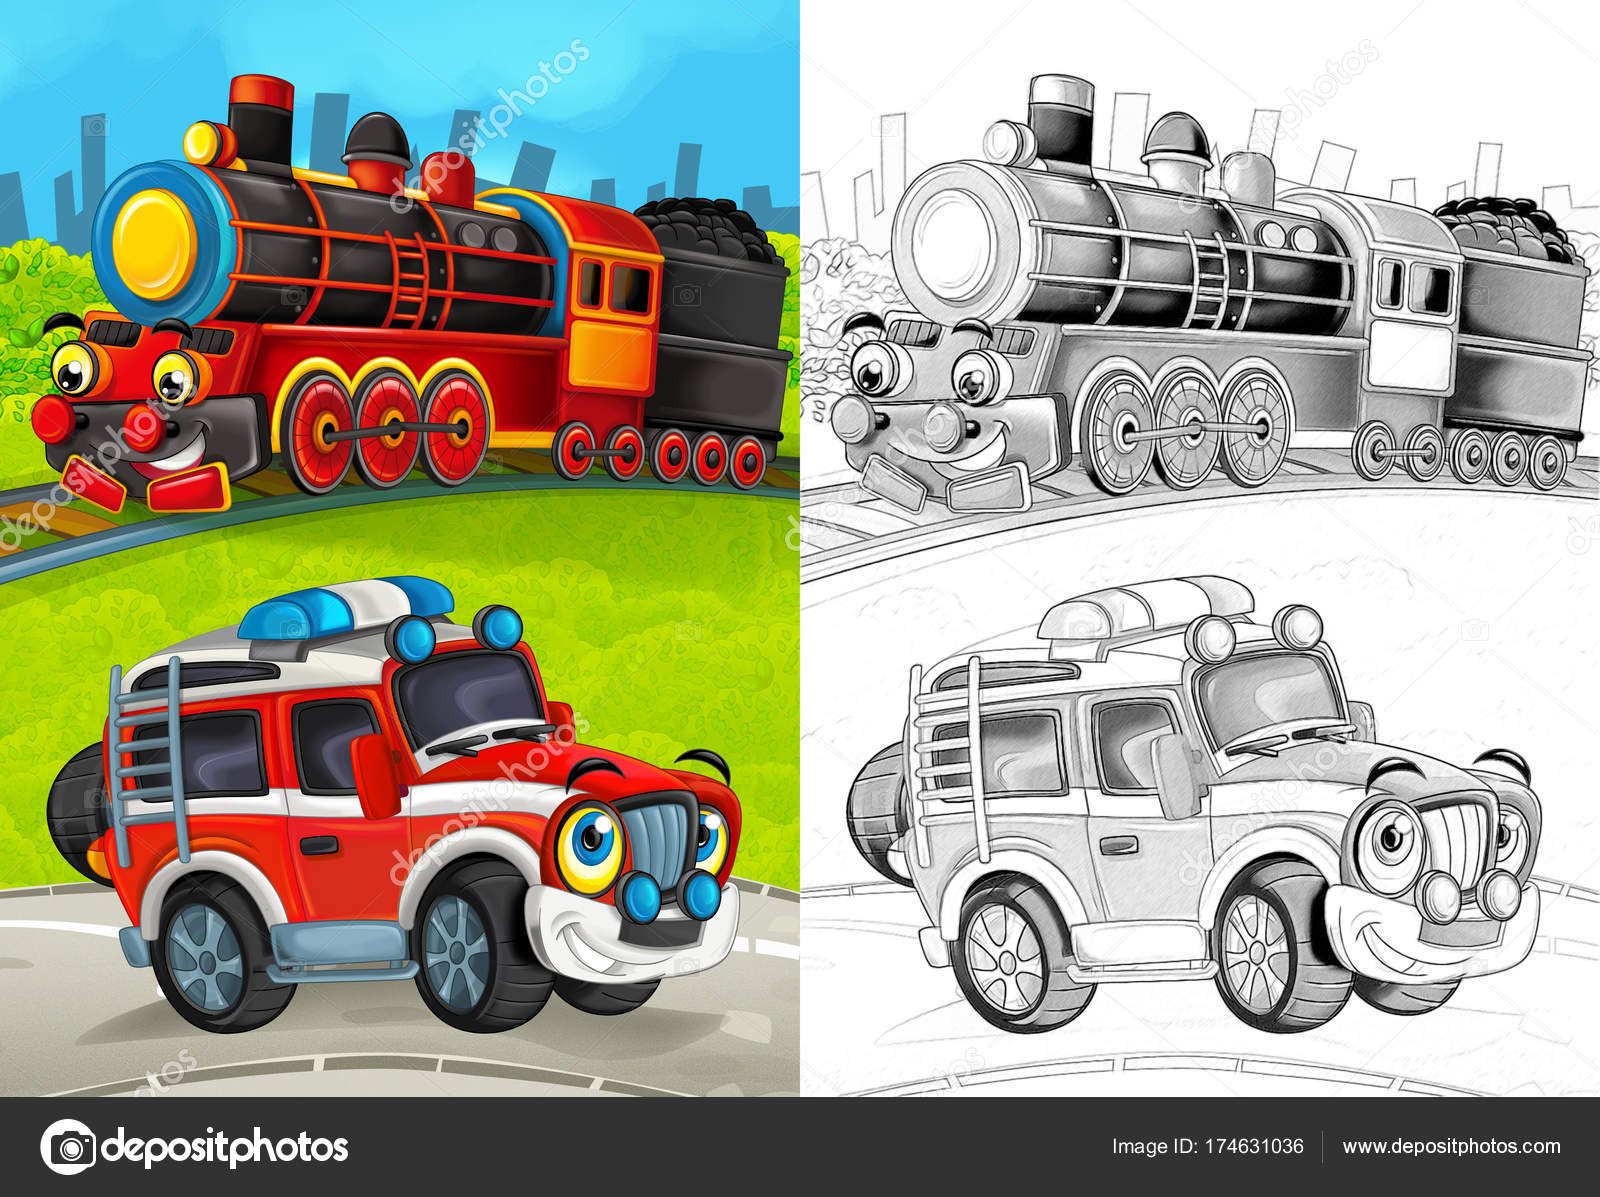 depositphotos stock photo cartoon scene happy fireman car